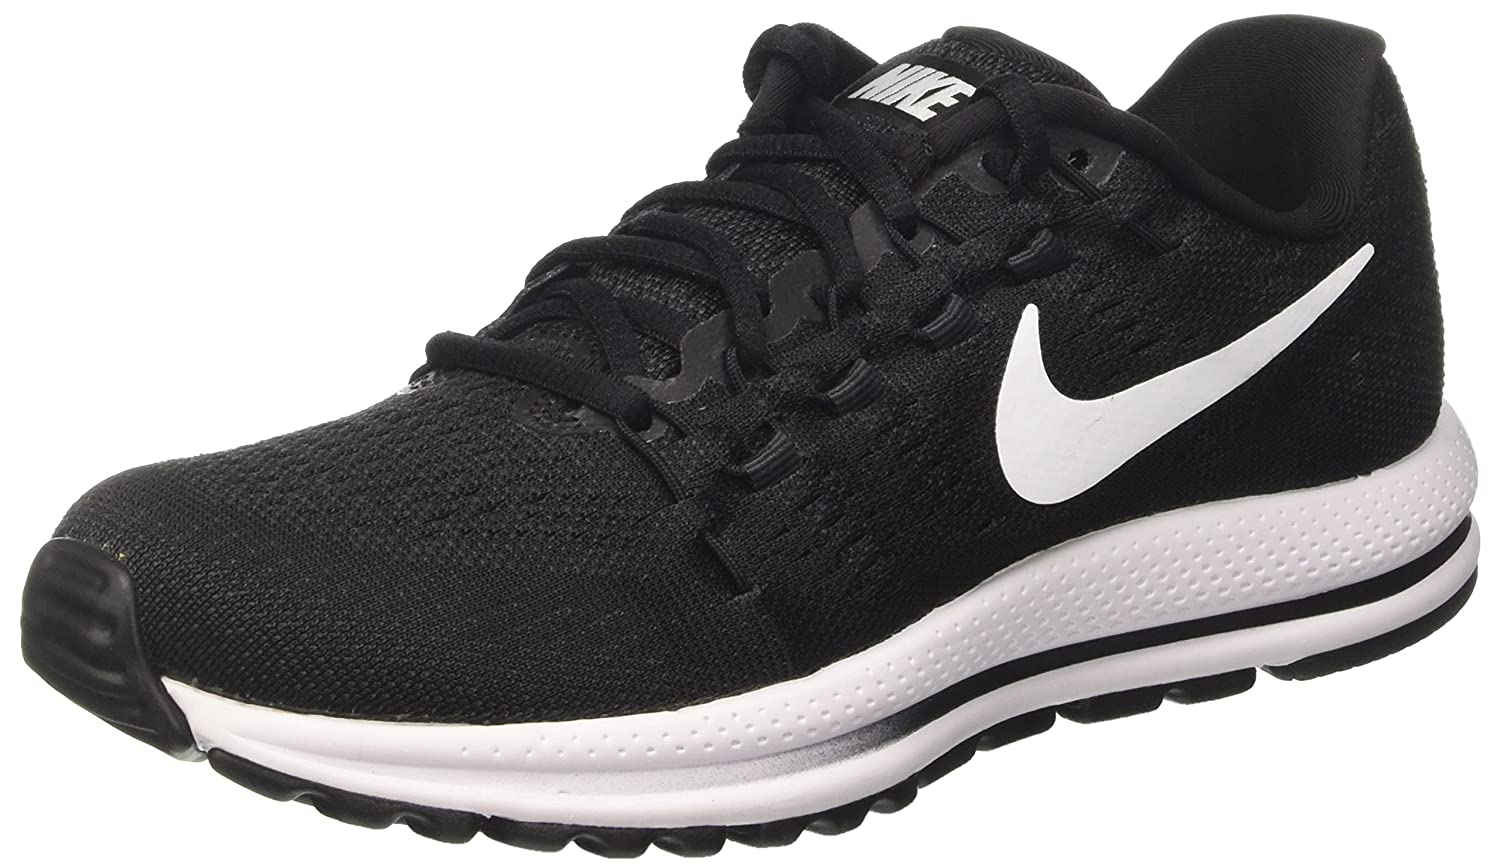 quality design 835cd f2796 Amazon.com   Nike Womens Air Zoom Vomero 12 Running Shoe Black Anthracite  White 6 B(M) US   Road Running